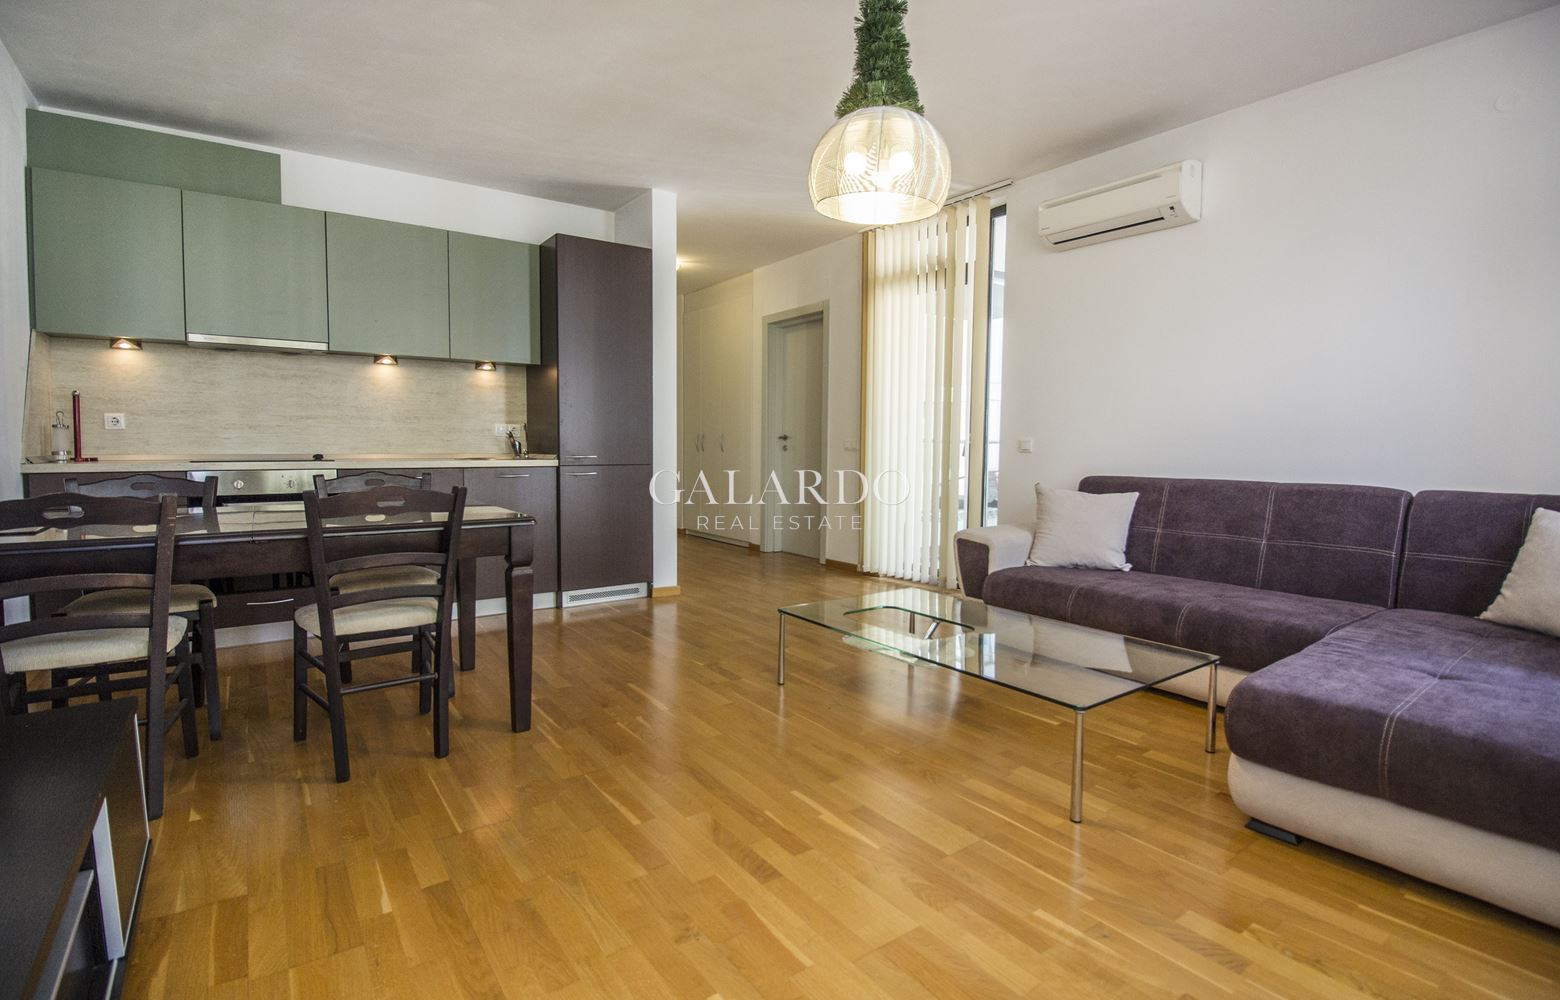 One bedroom apartment for rent in a gated complex